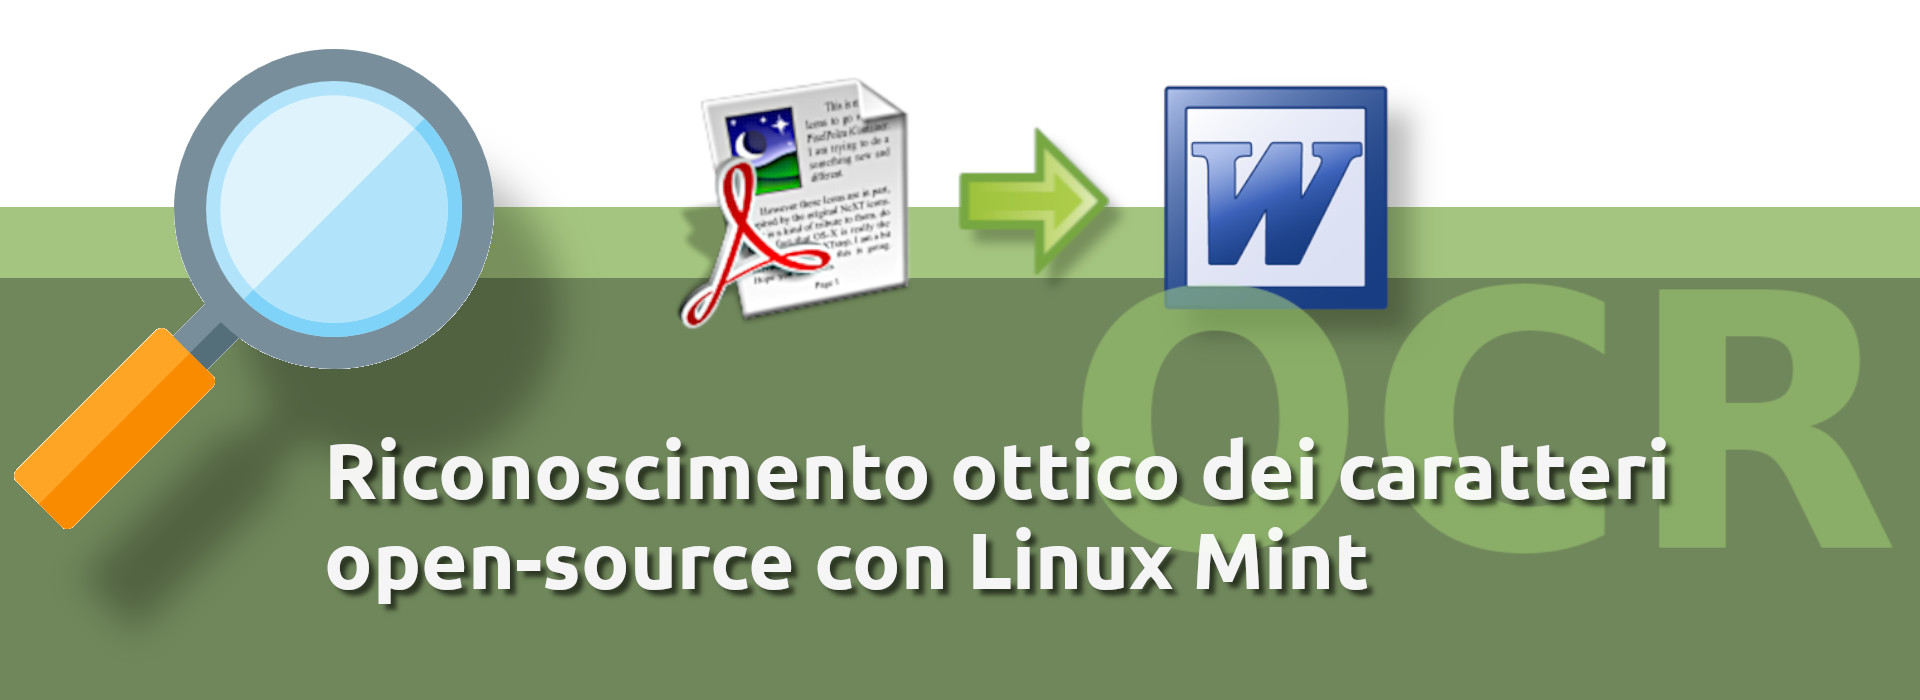 ocr gratis open source in Linux mint cover